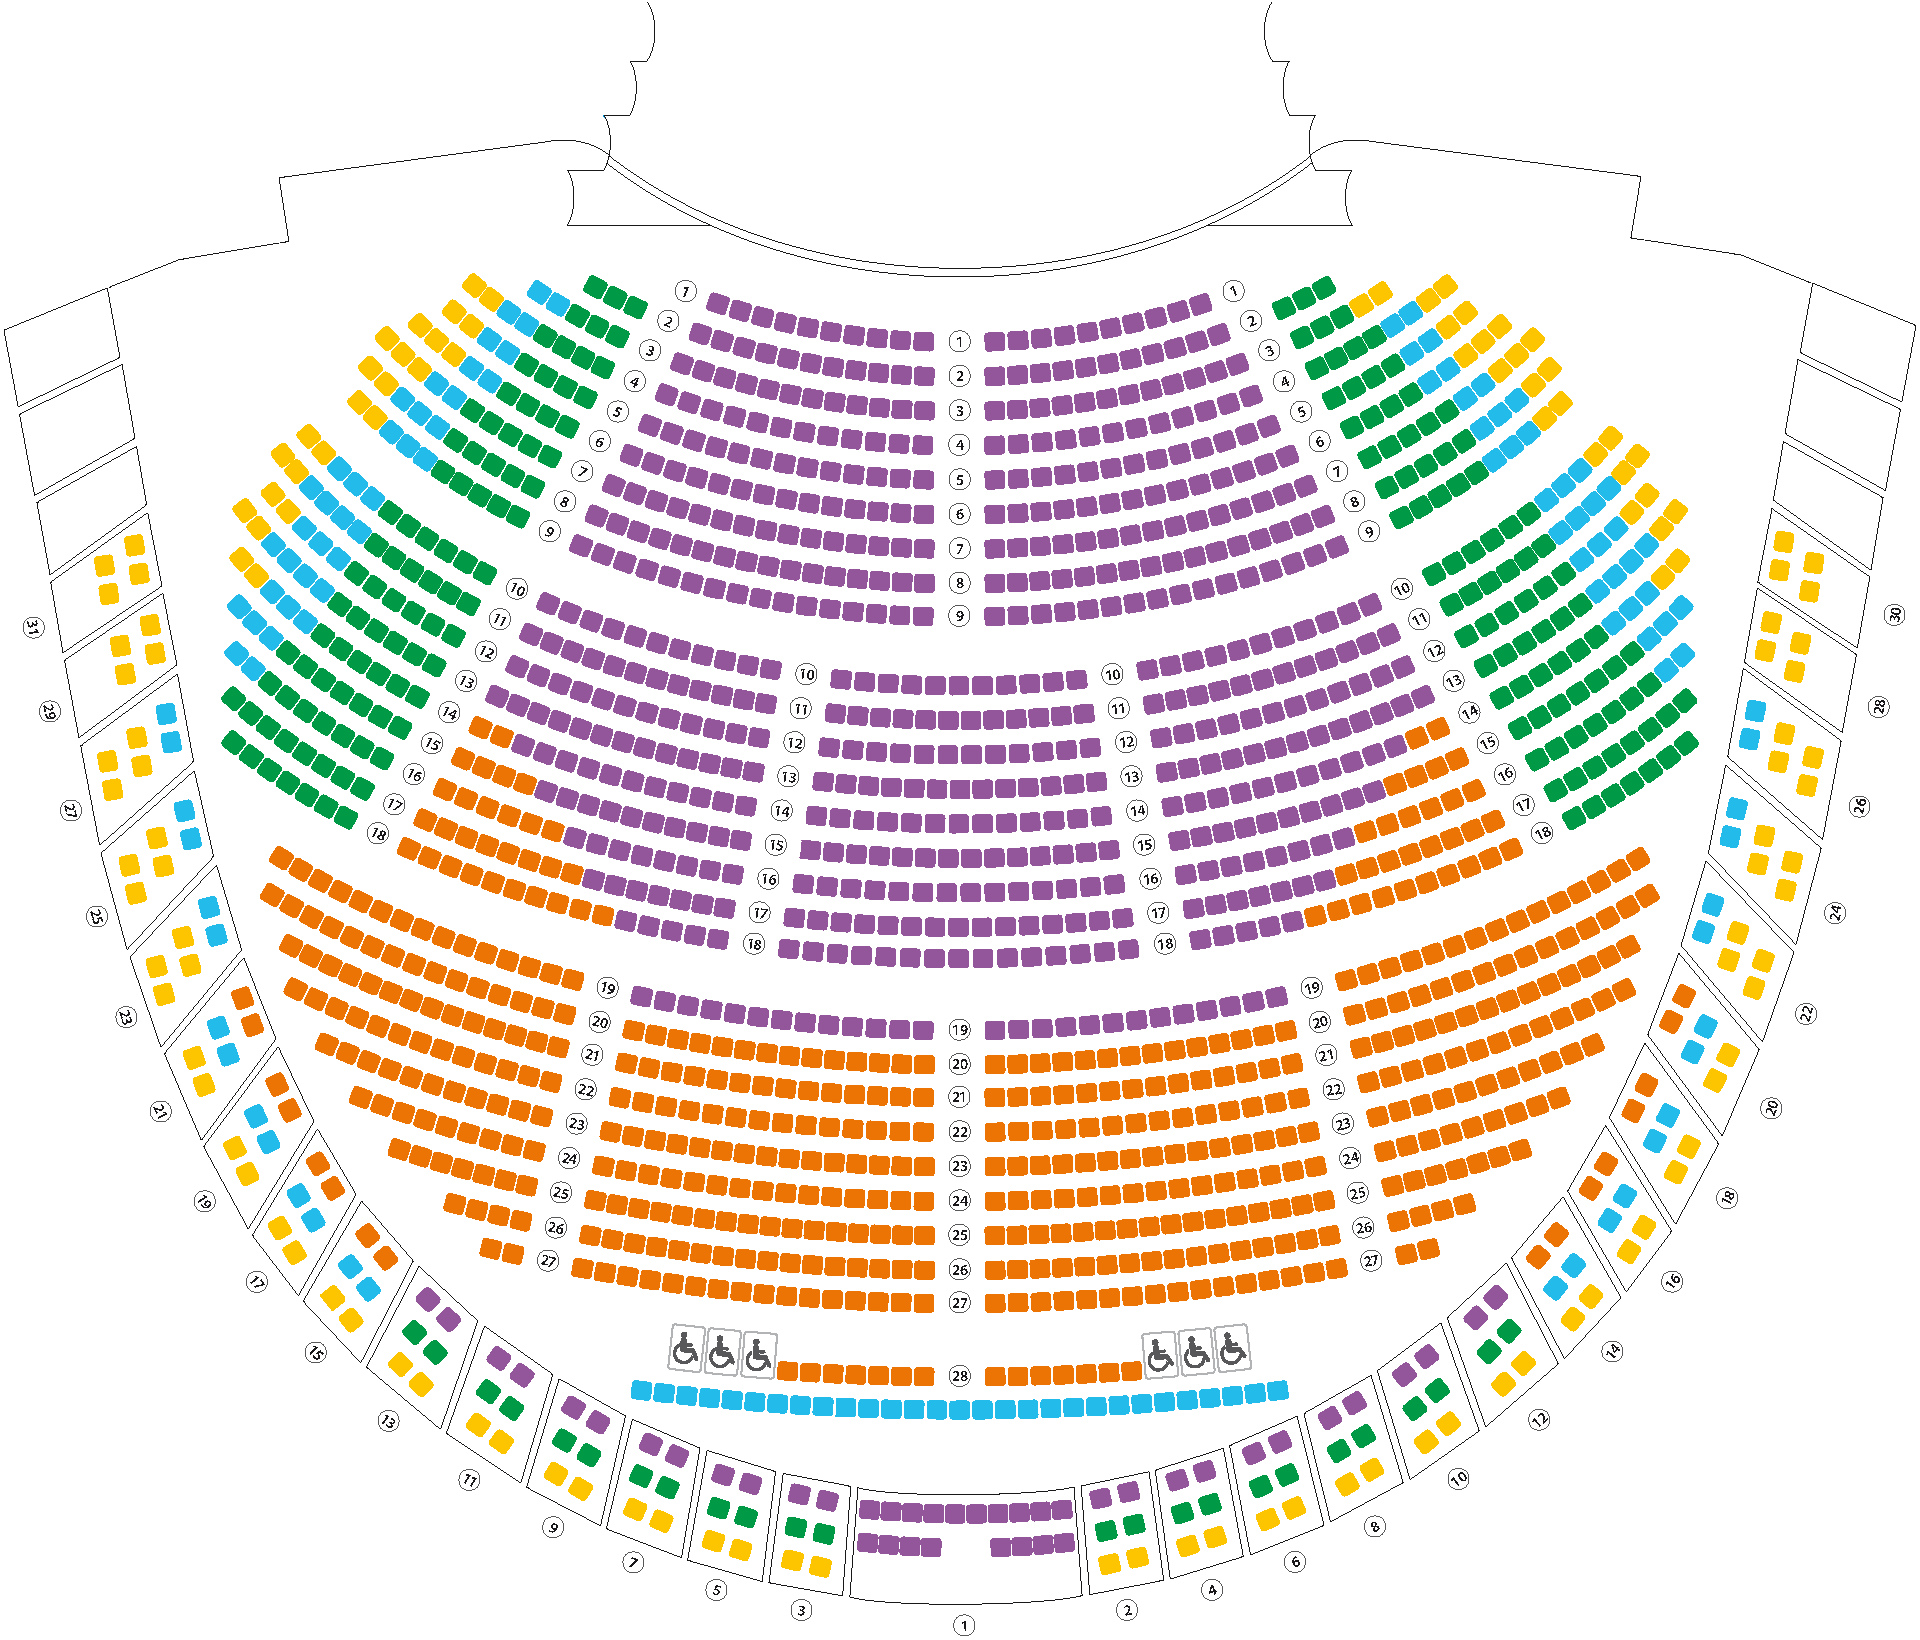 Floorplan with sectors for Opera and Ballet Season